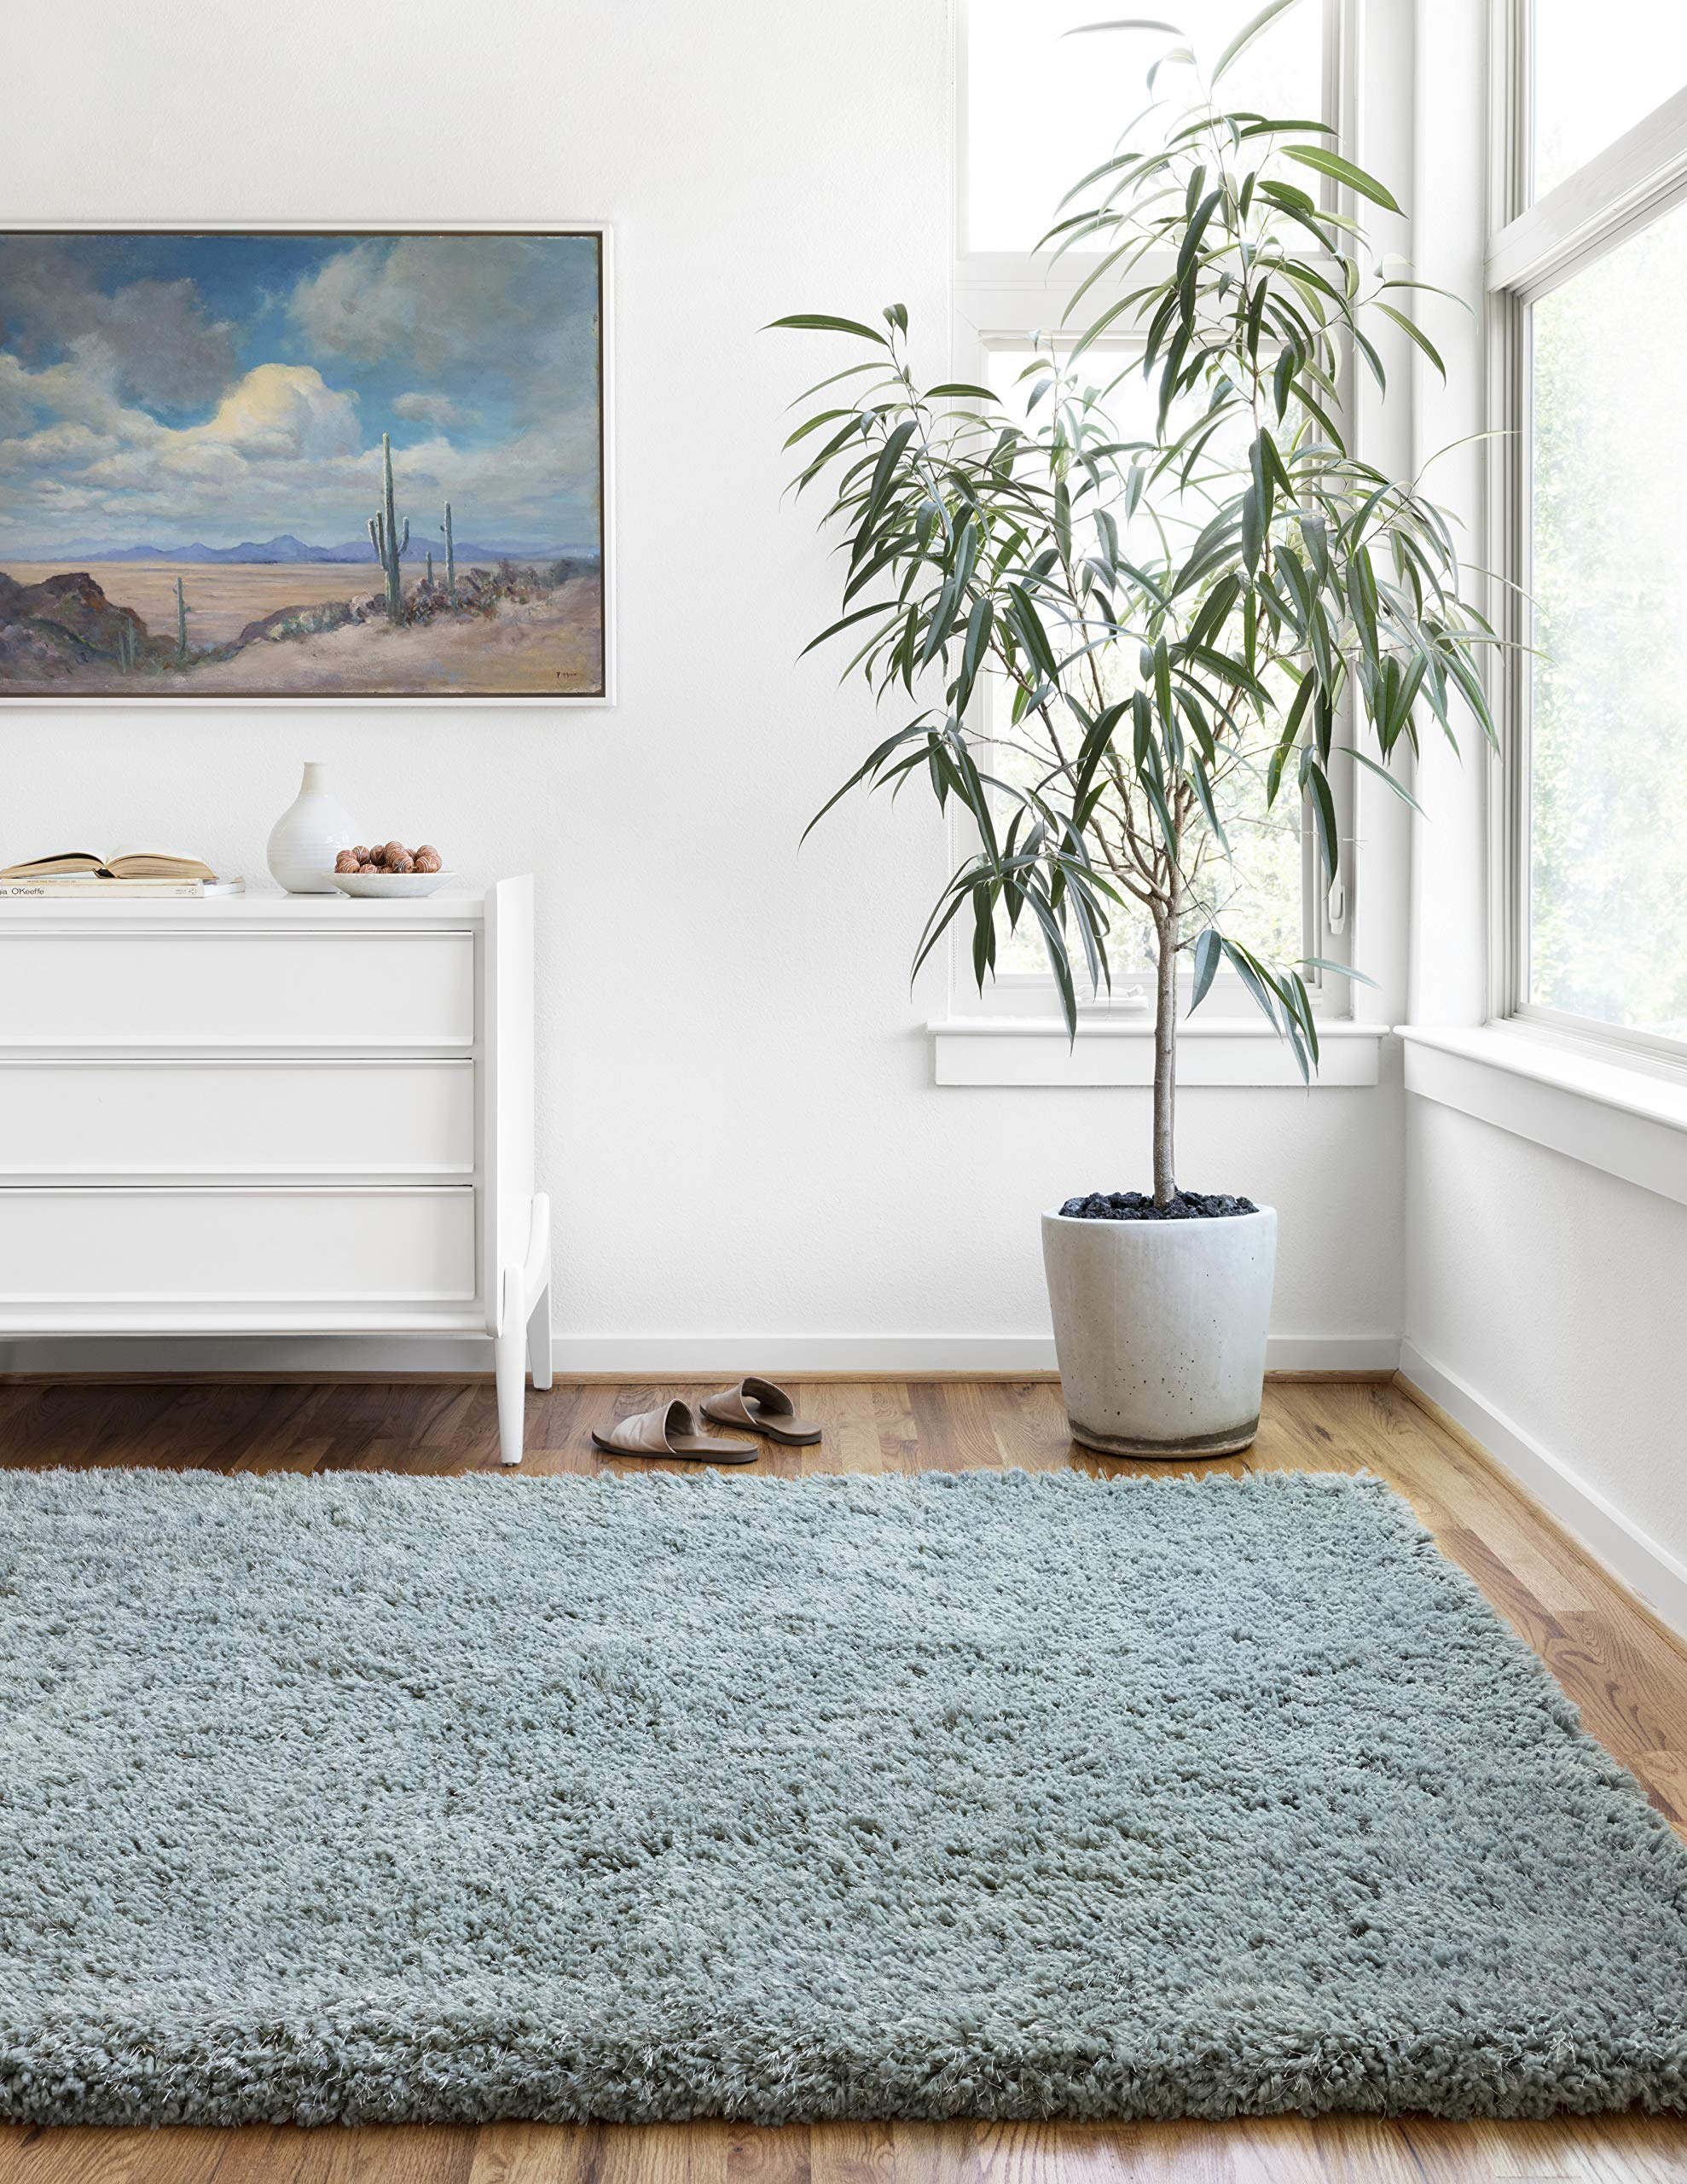 Loloi MMILMIL-01SPA02339 Mila Shag Collection Area Rug, 2'3'' x 3'9'', Spa